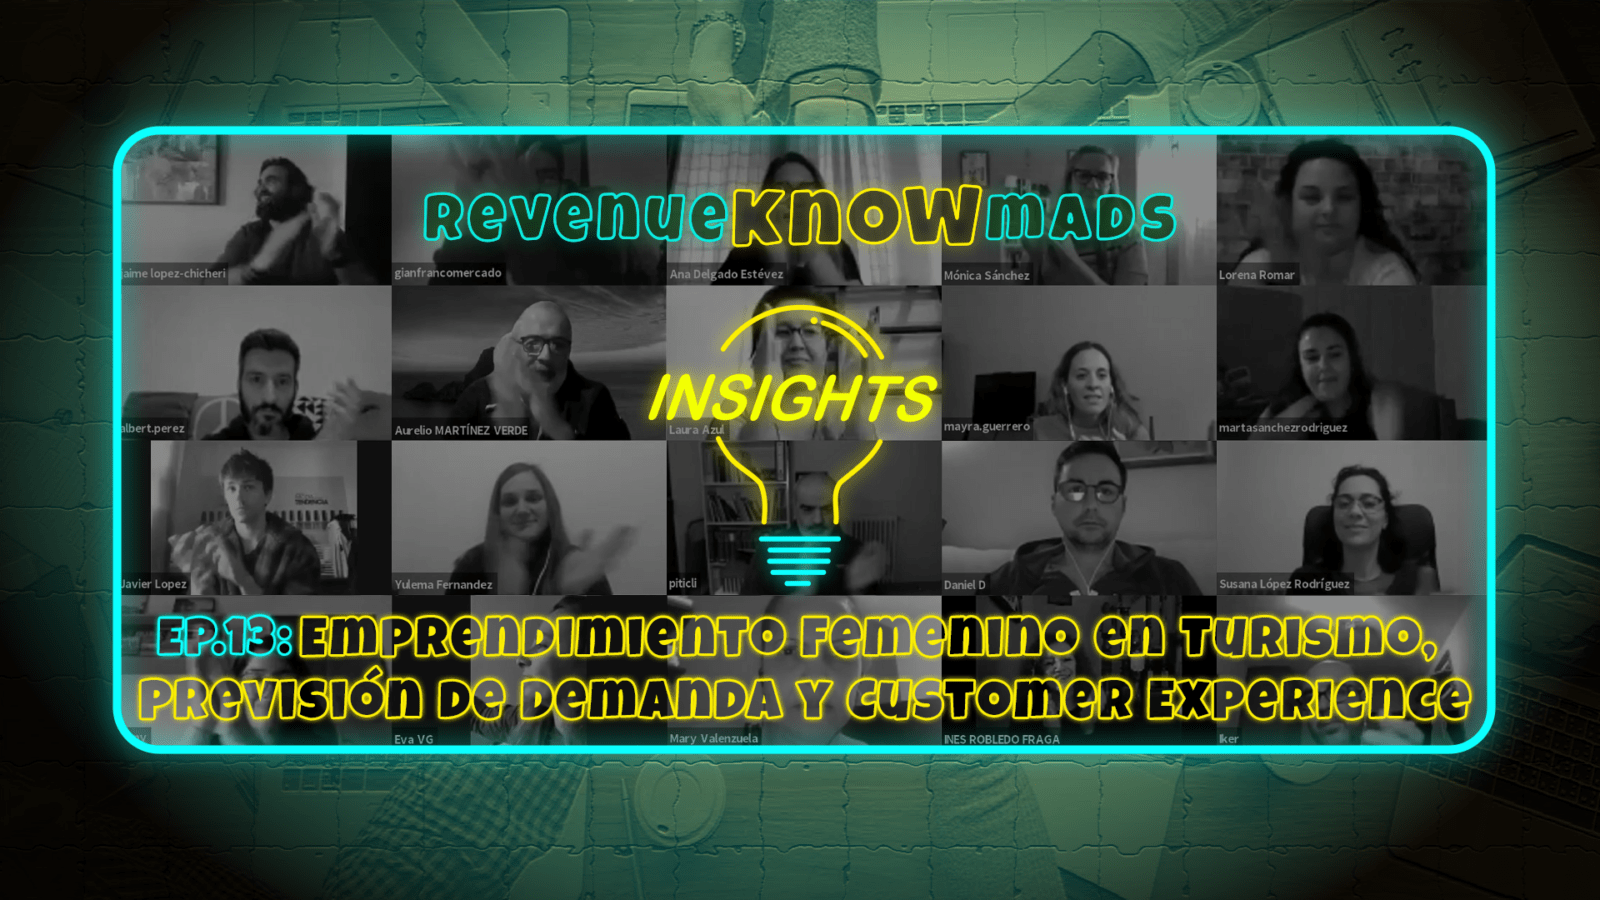 RevenueKnowmads Insights - Ep.13